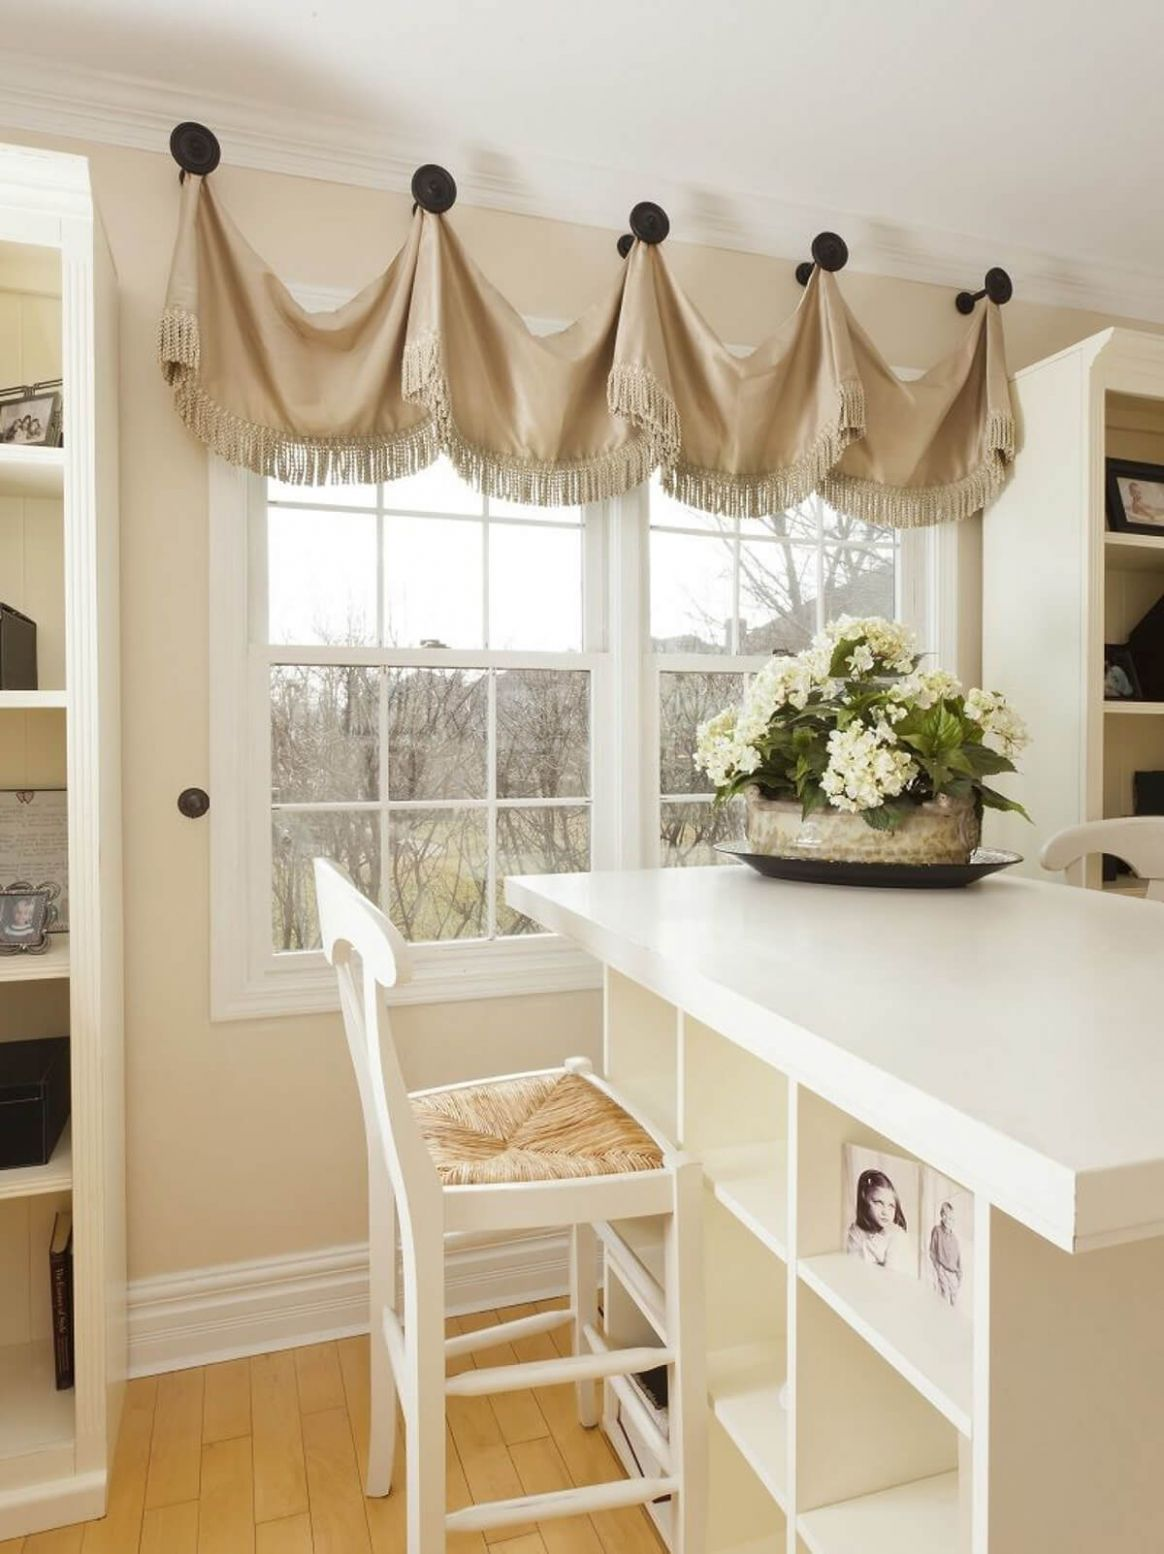 12 Best Farmhouse Window Treatment Ideas and Designs for 12